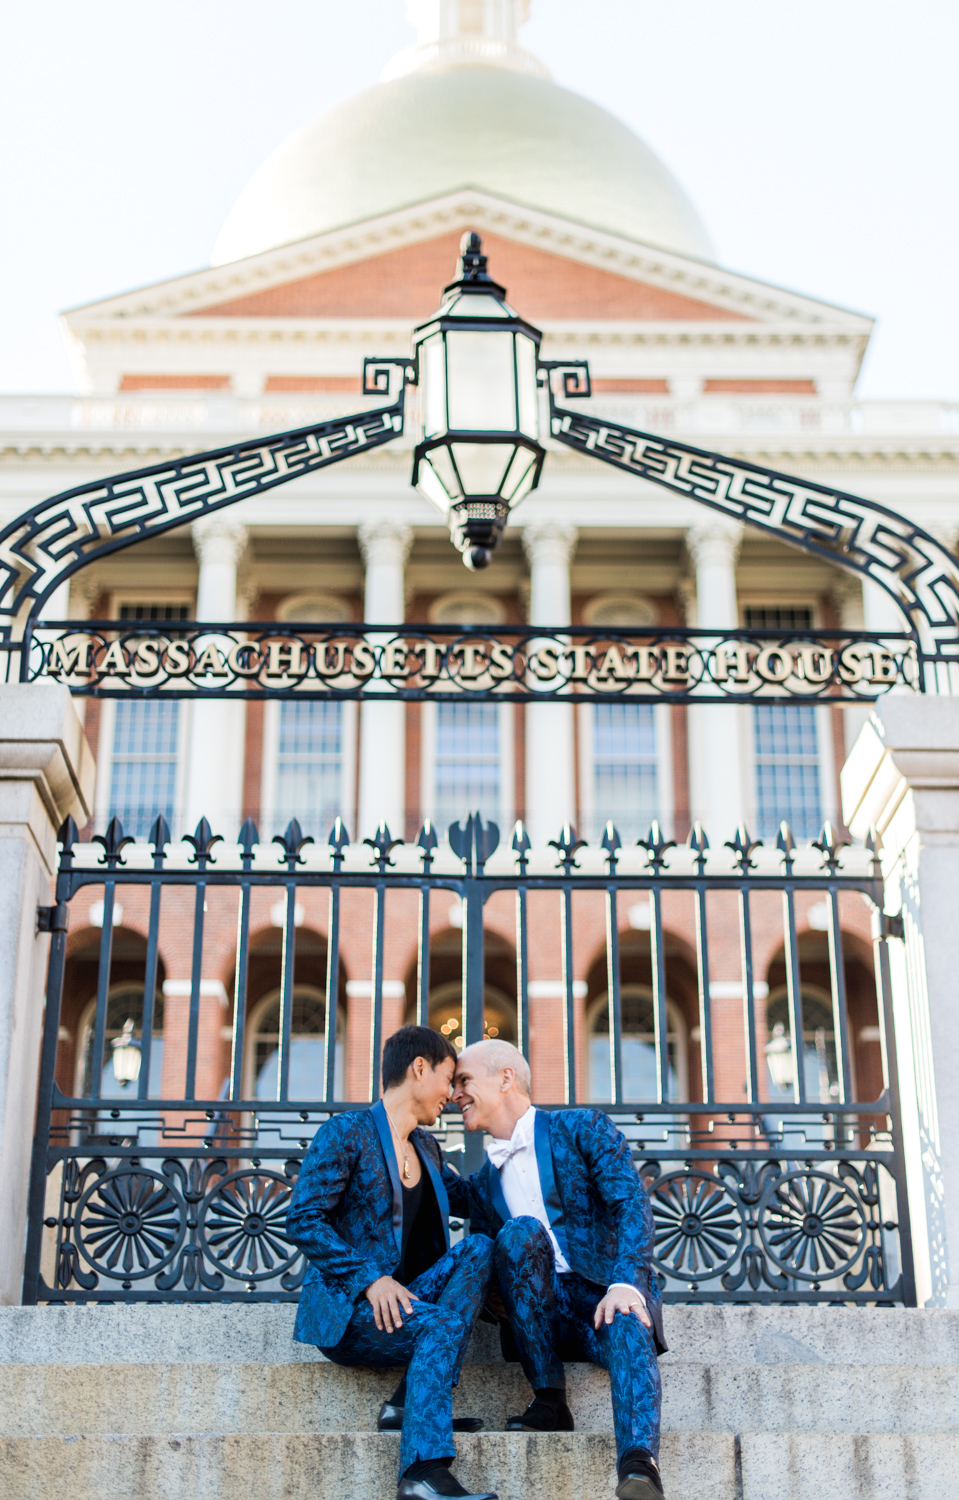 Boston-Massachusetts-State-House-Gay-Engagement-Photos